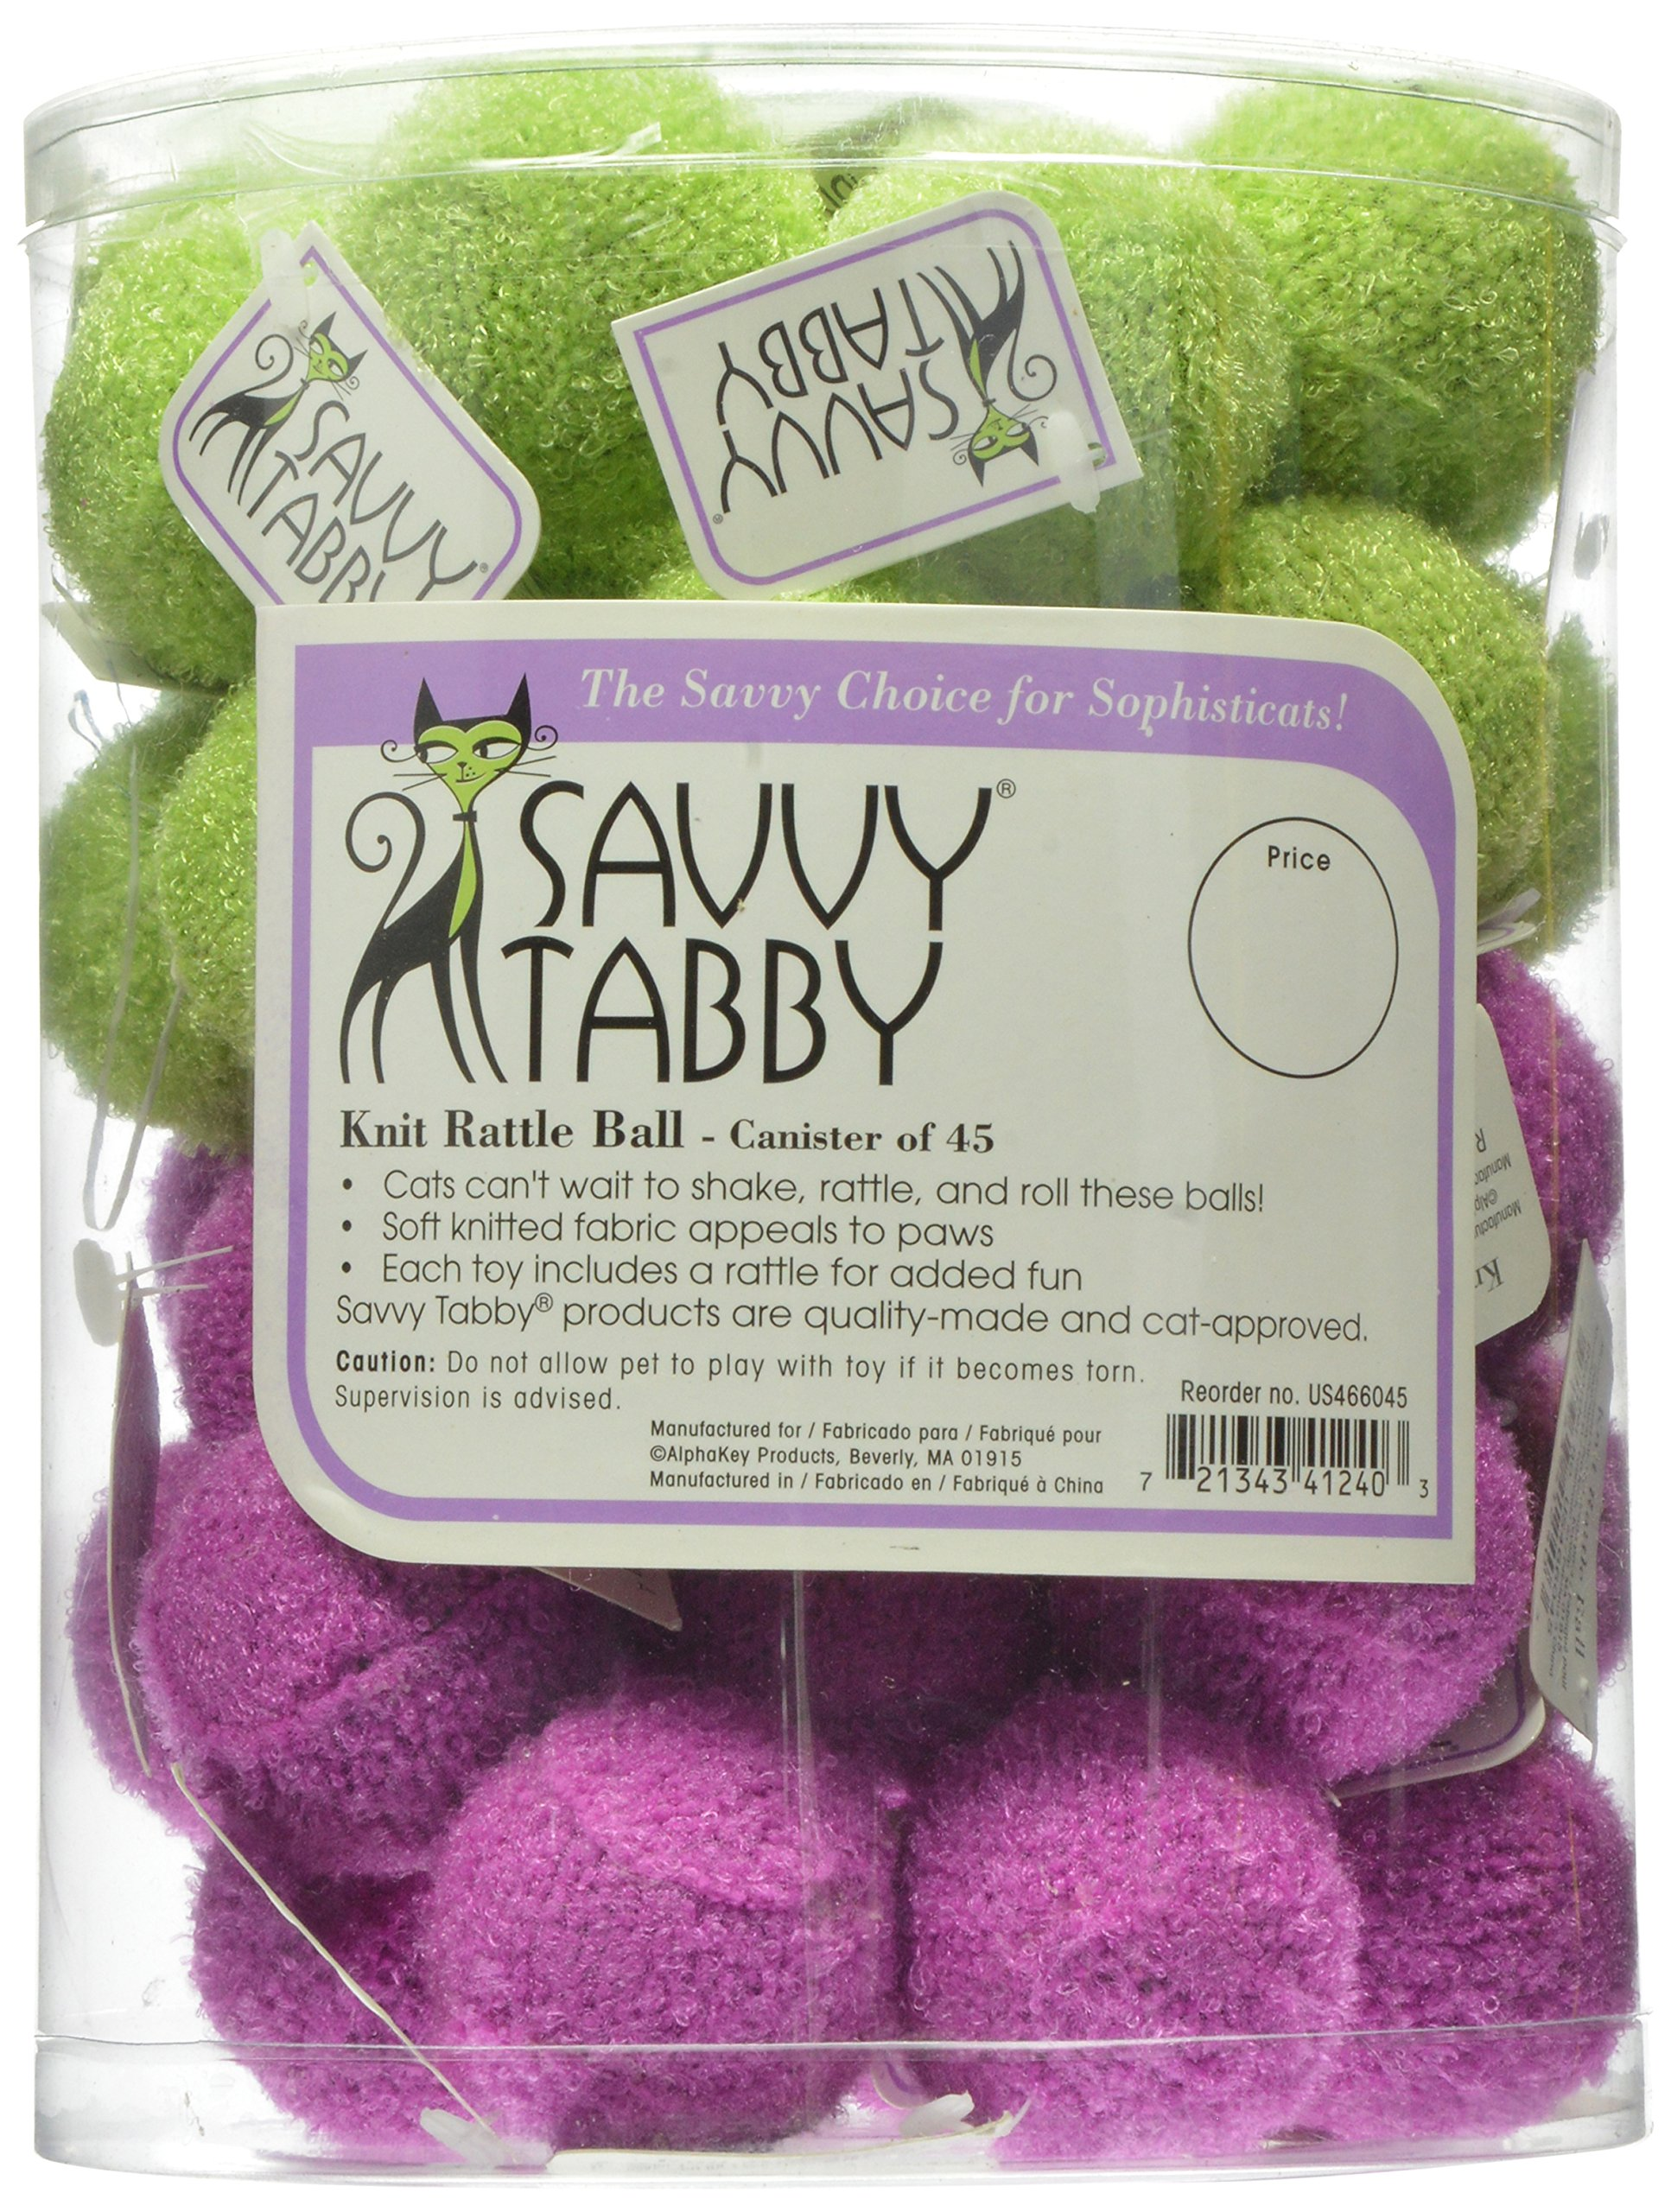 Savvy Tabby US4660 45 45-Piece ST Knit Rattle Ball Canister